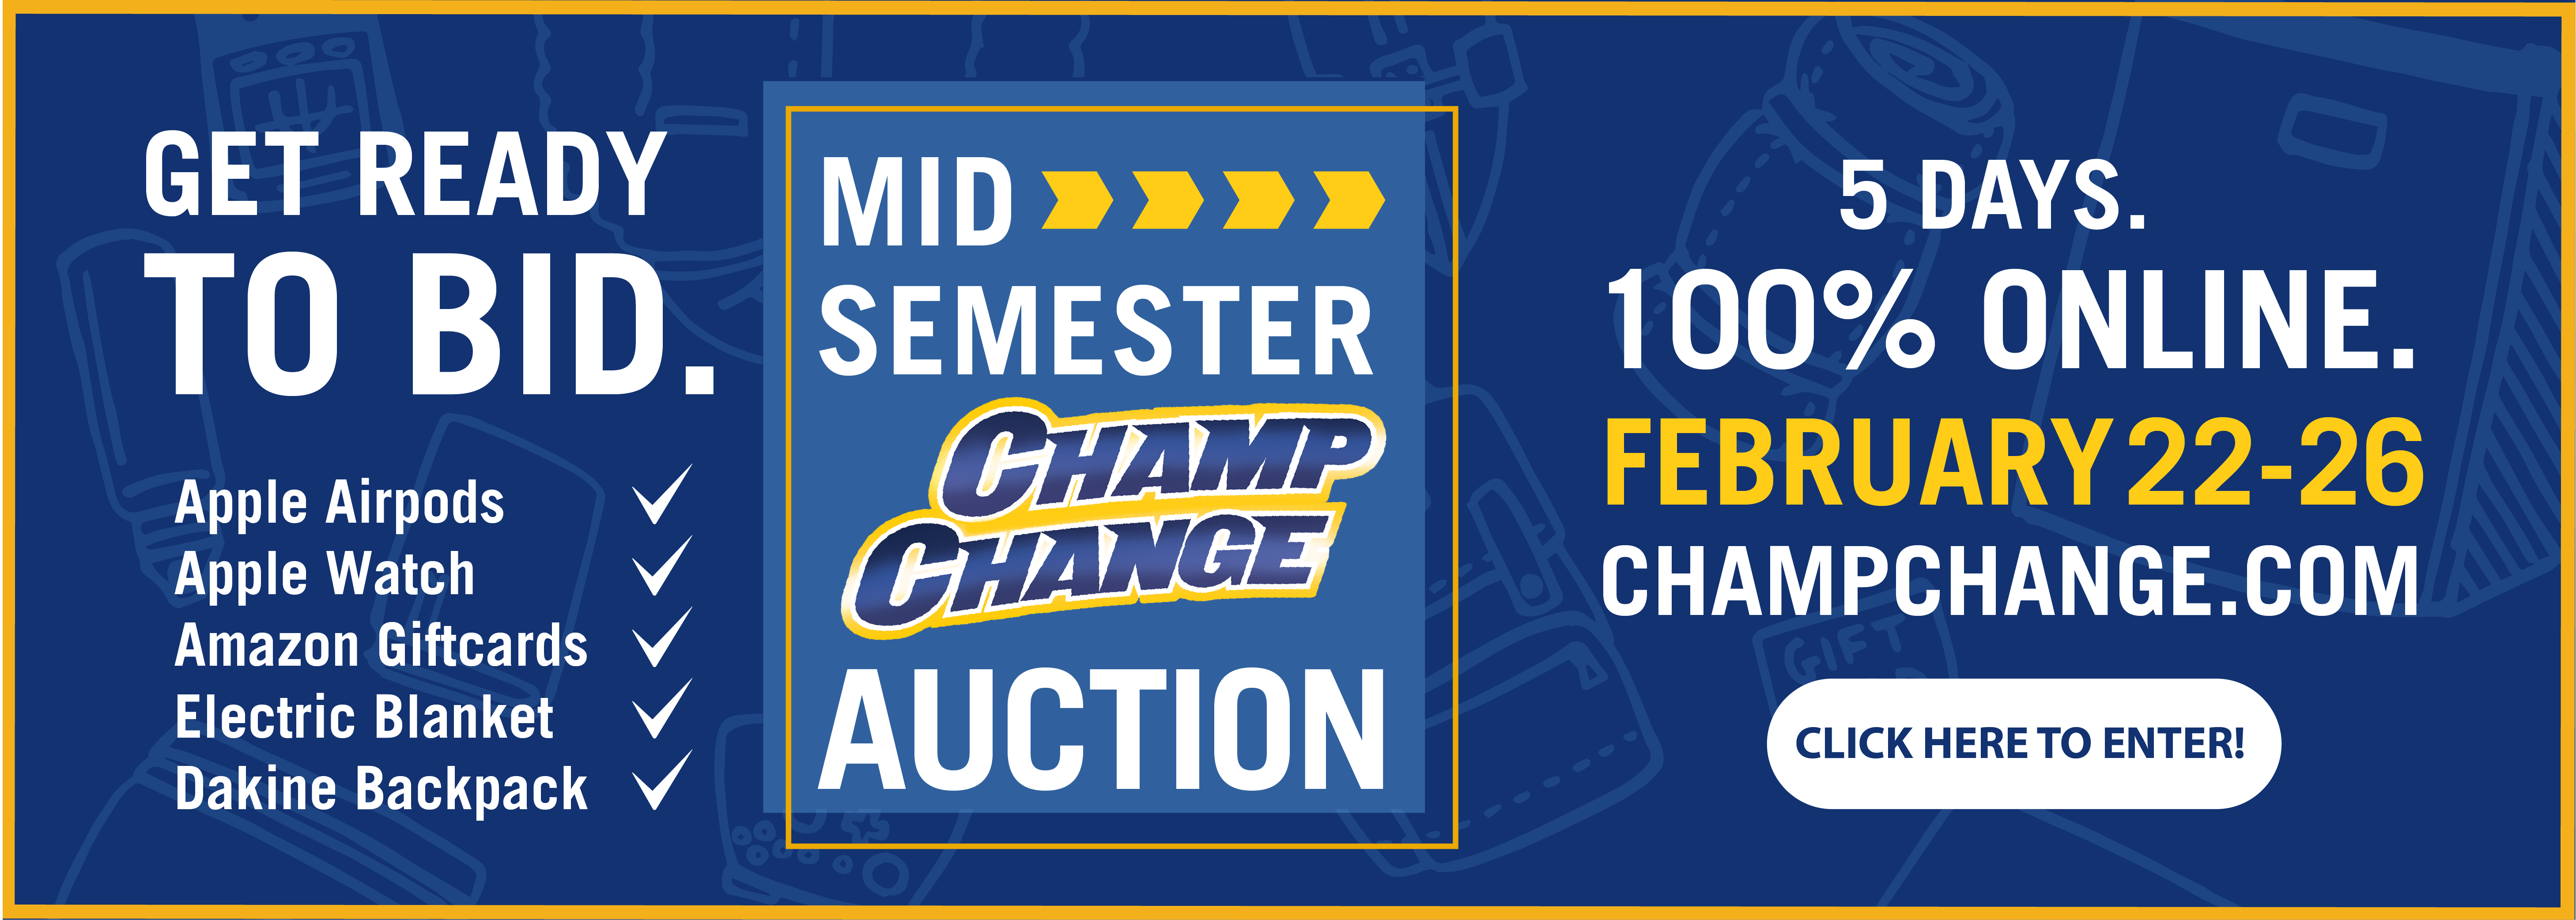 Mid semester champchange auction. 5 days. 100% online. February 22-26 champchange.com. Click here to bid. Get ready to bid.